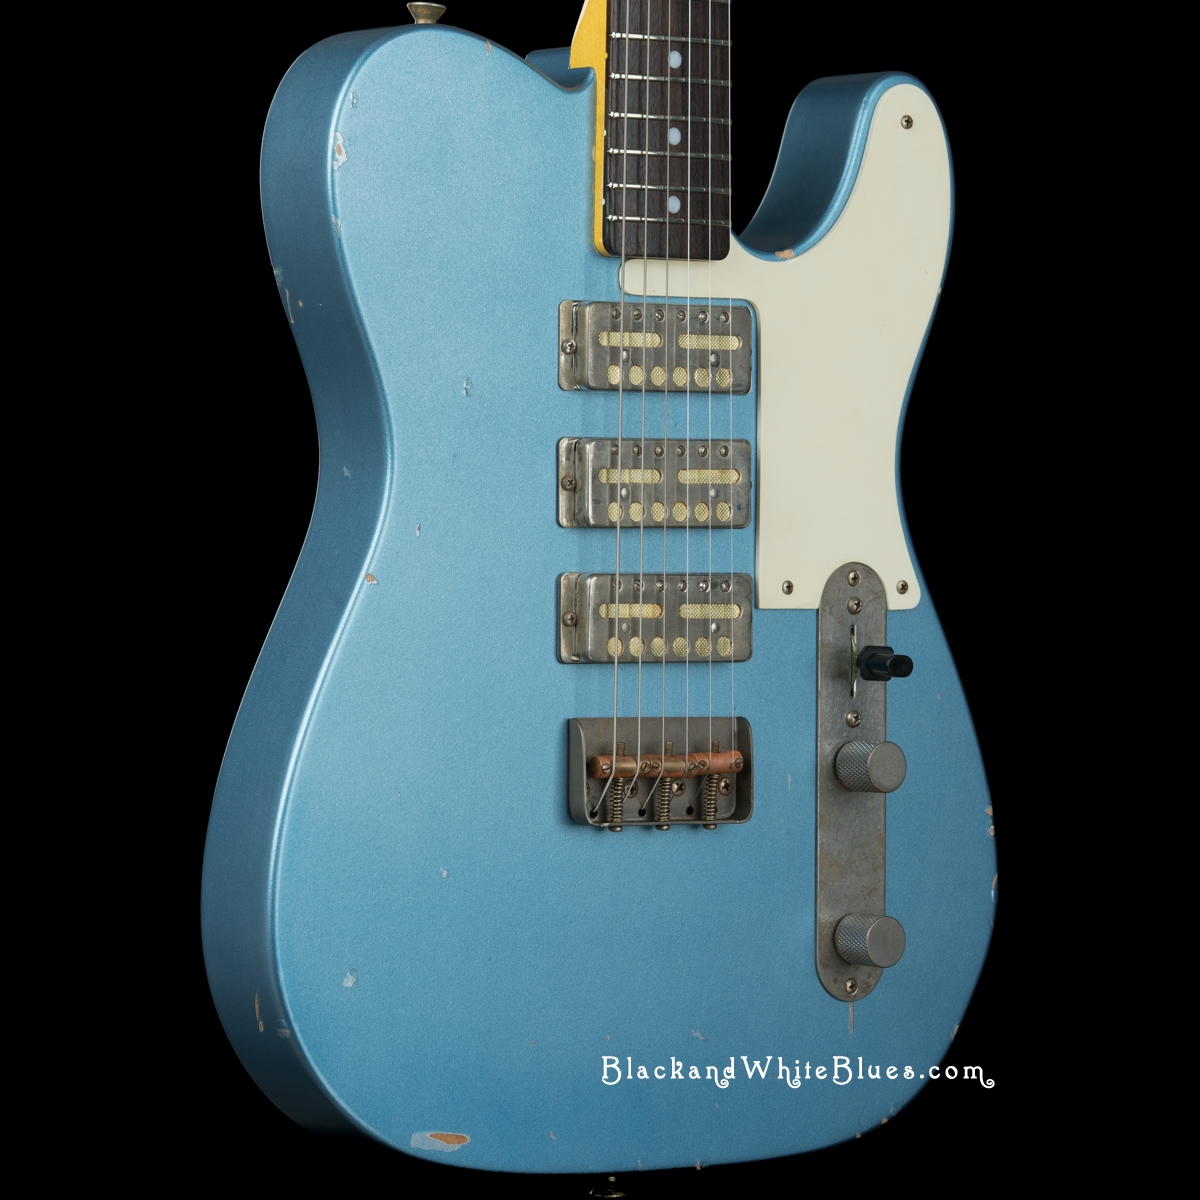 Nash Guitars GF-3 Light Distress in Ice Blue - Black and White Blues ...